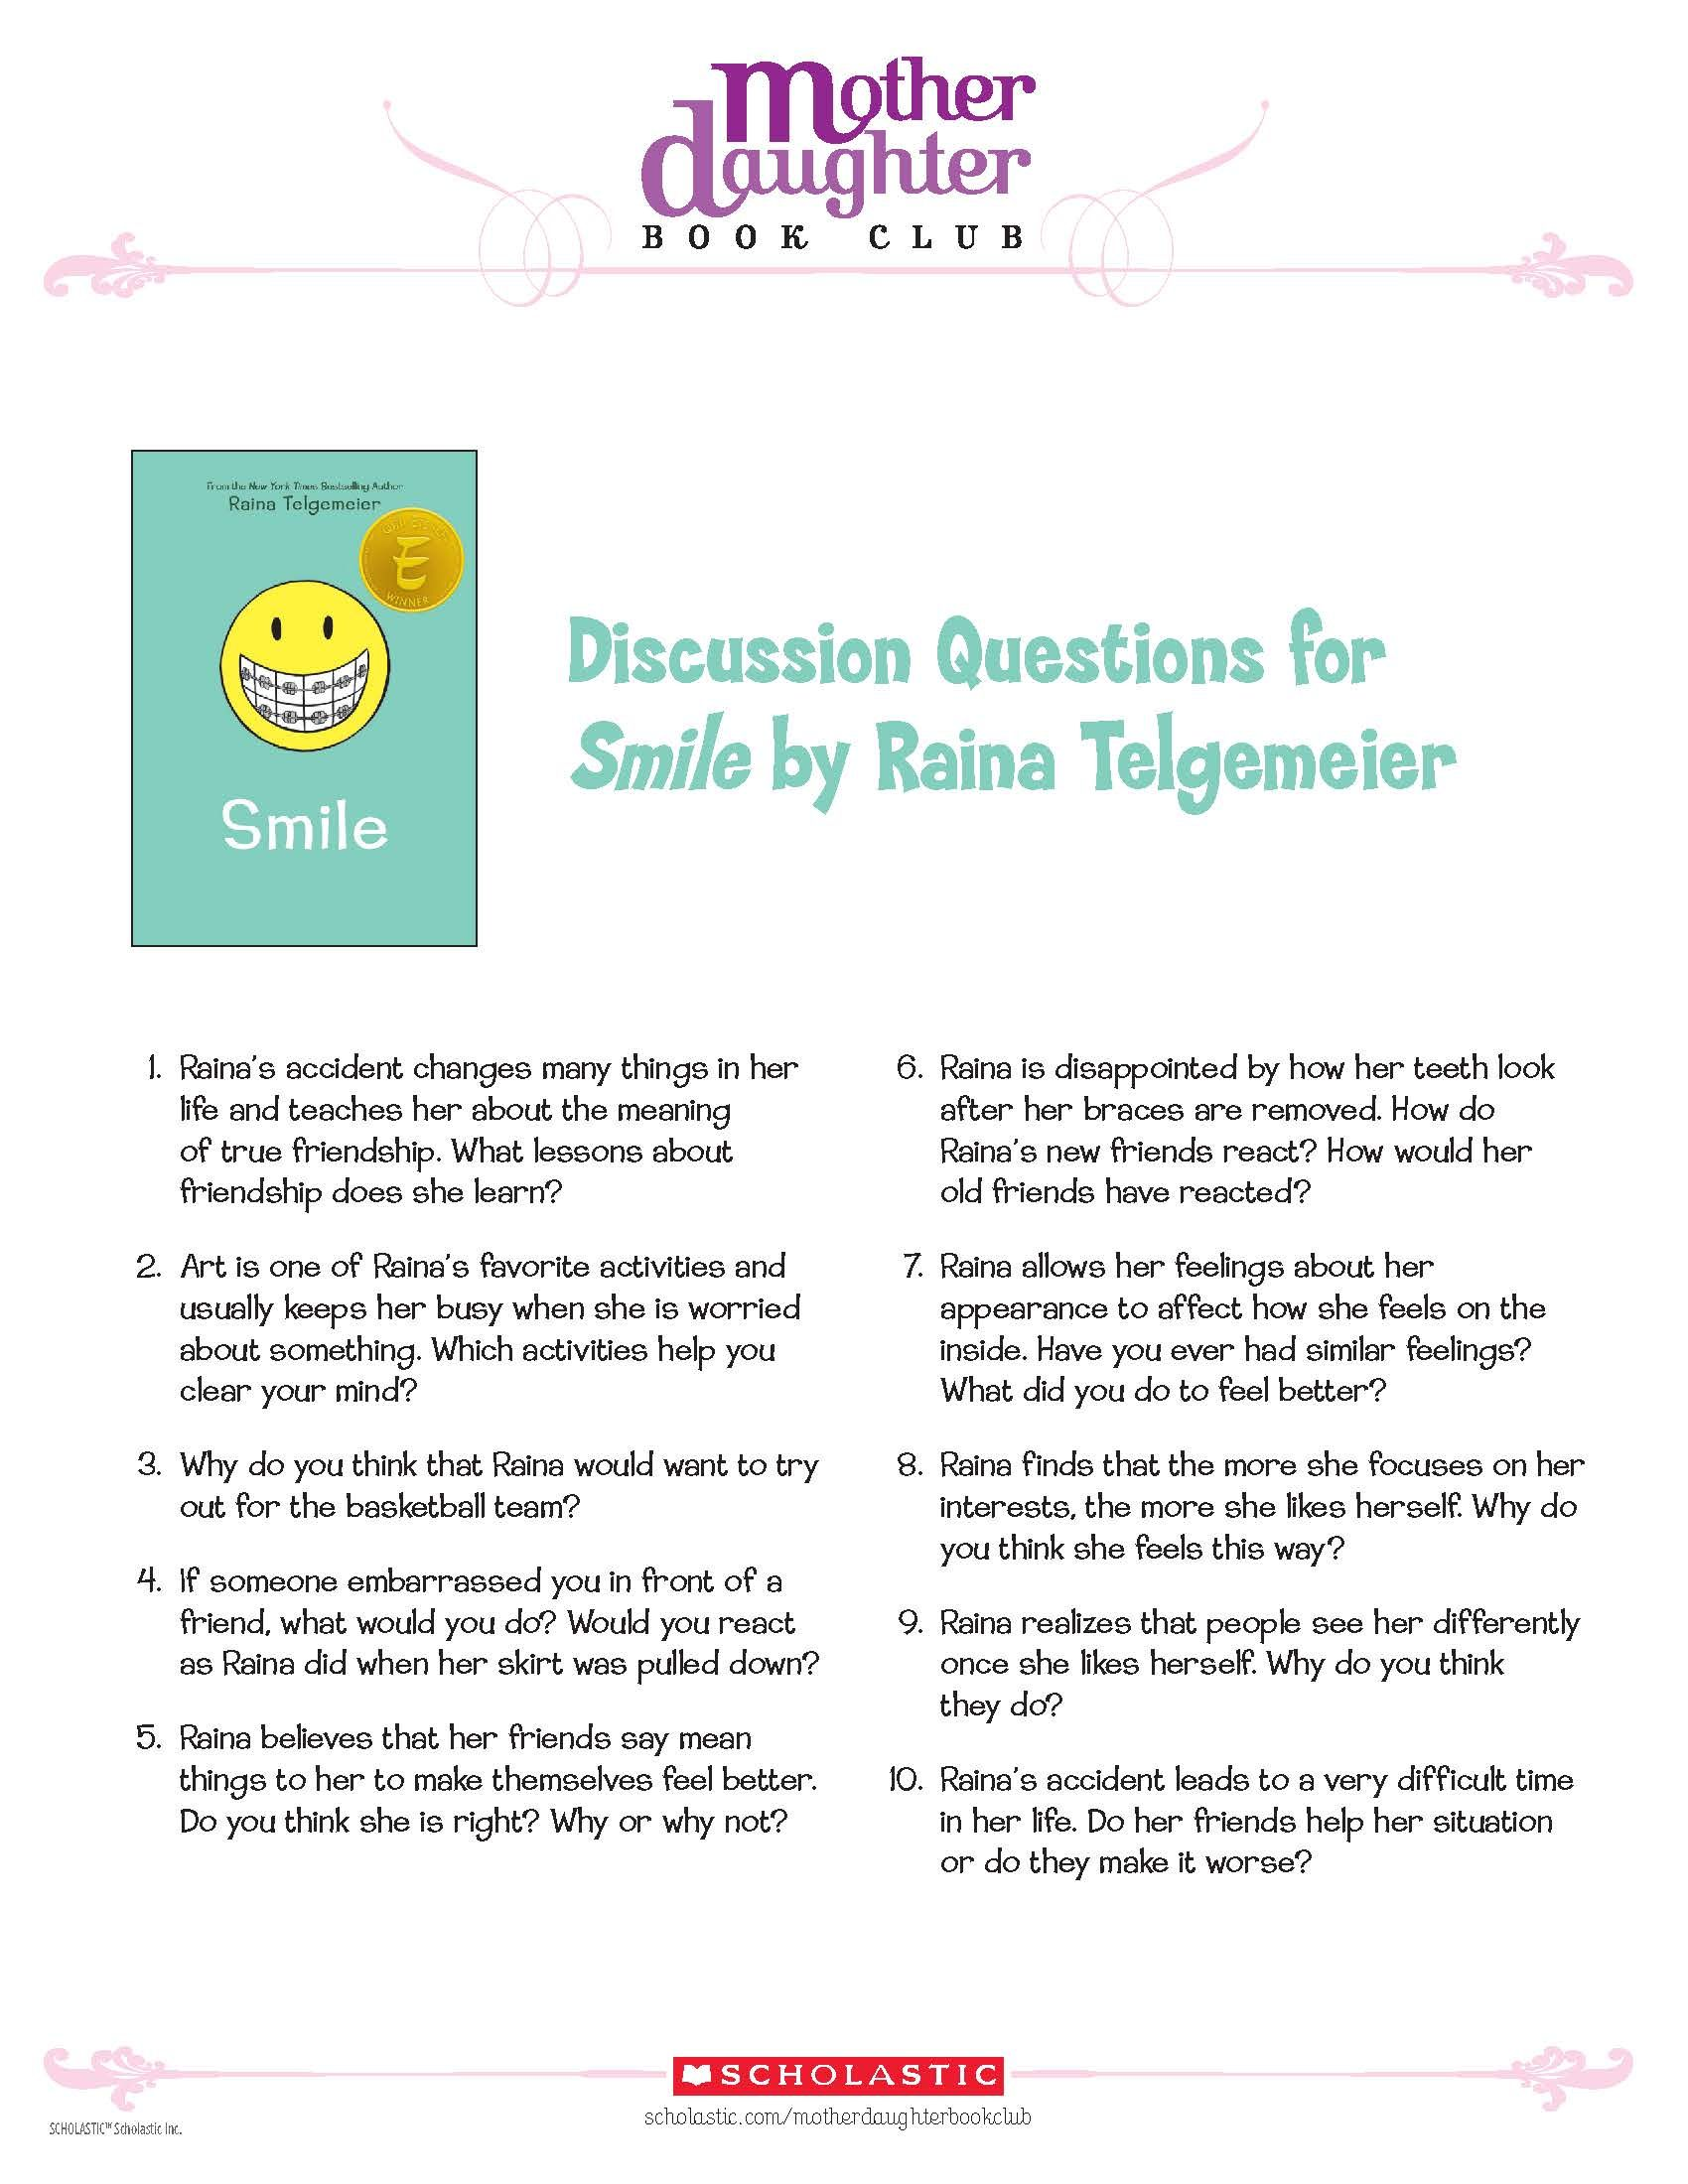 Discussion Questions For Smile By Raina Telgemeier